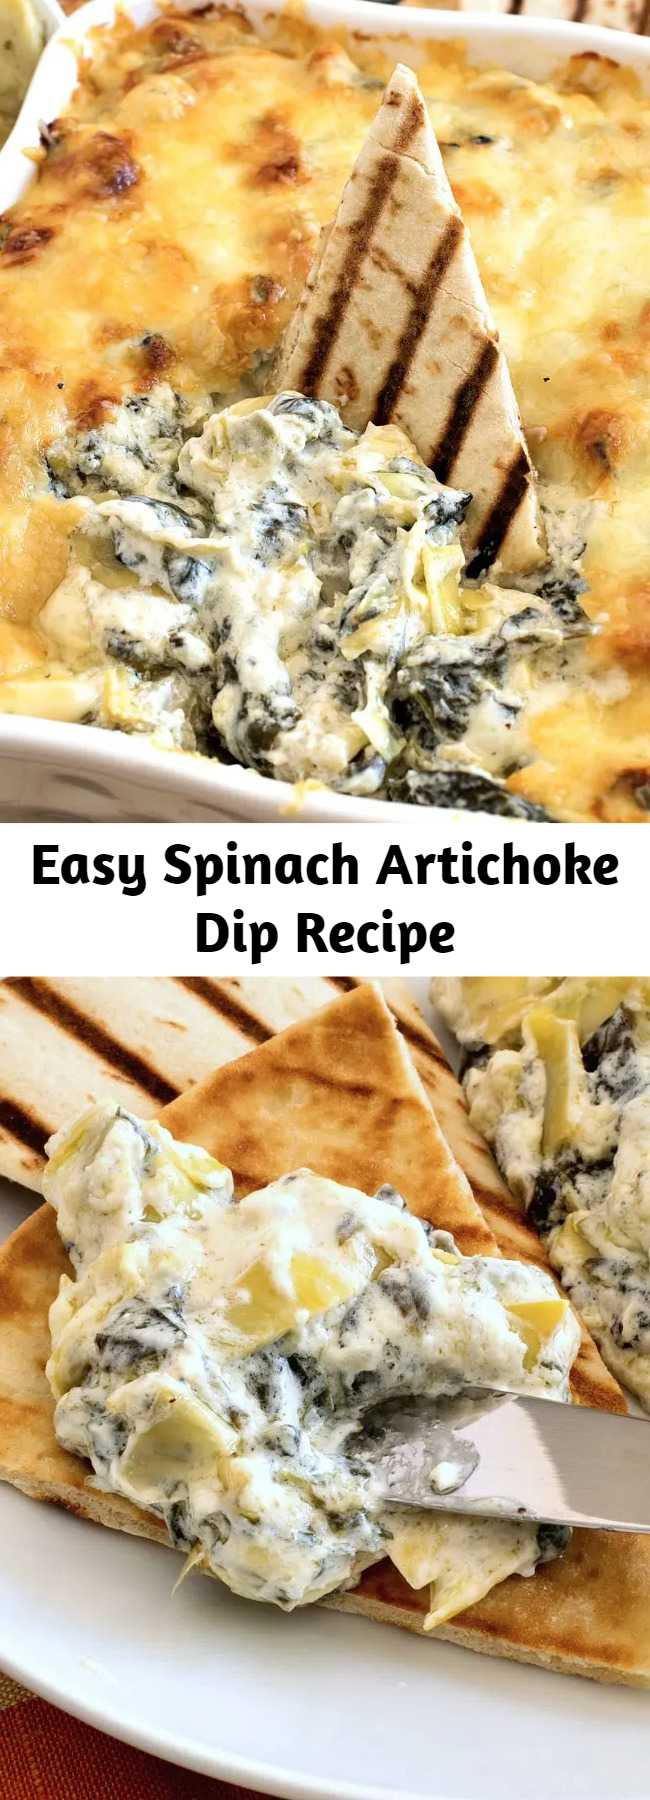 Easy Spinach Artichoke Dip Recipe - Spinach Artichoke Dip is a hot, creamy dip loaded with fresh baby spinach and marinated artichokes.